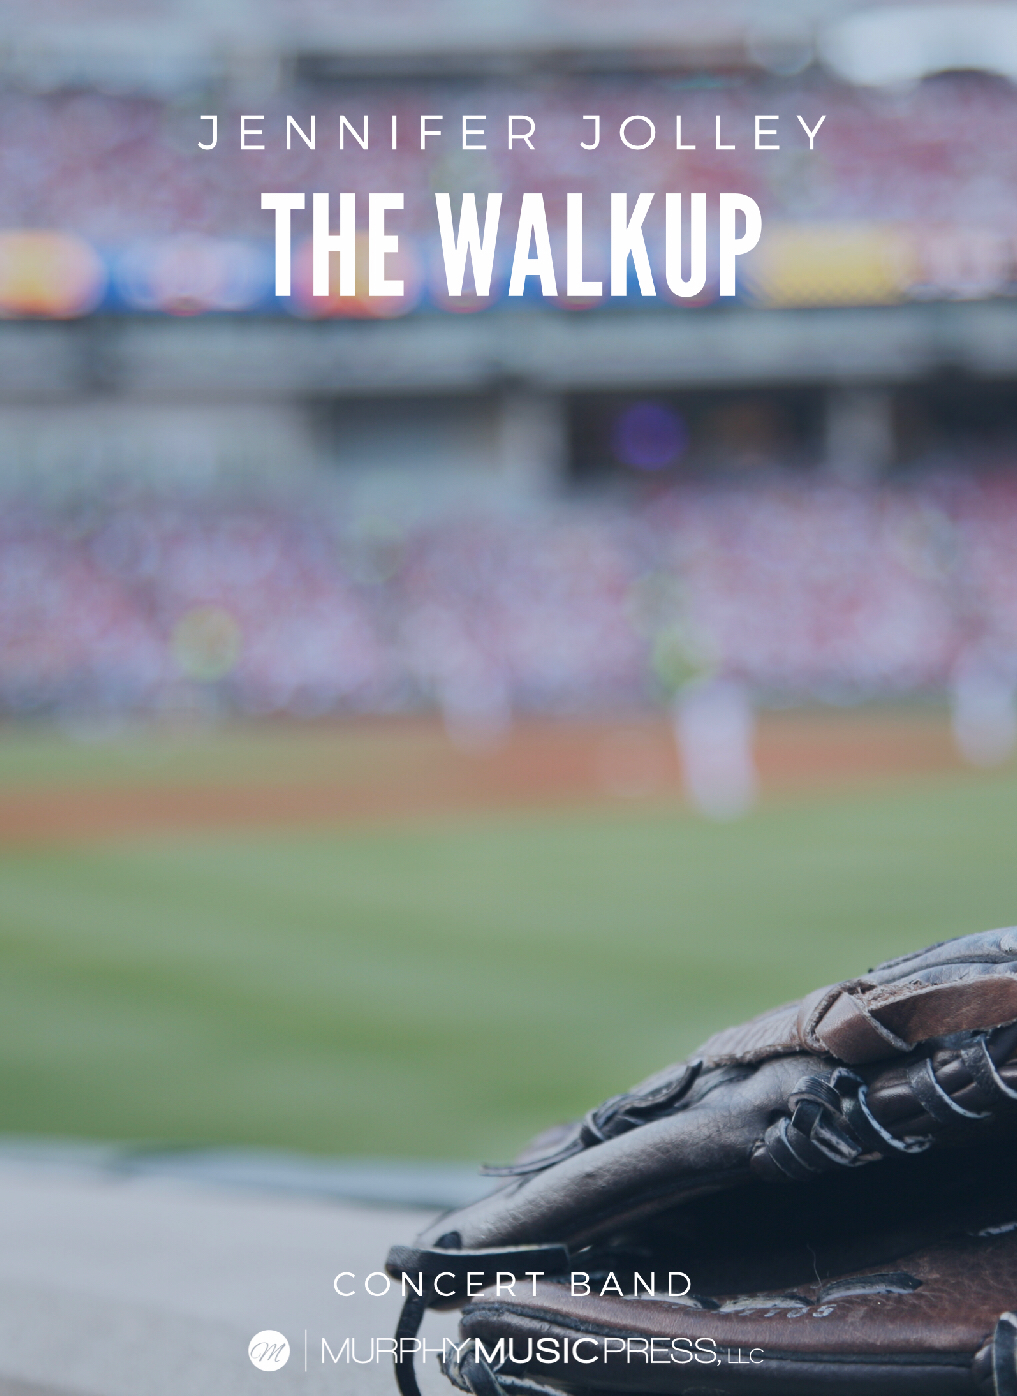 The Walkup by Jennifer Jolley